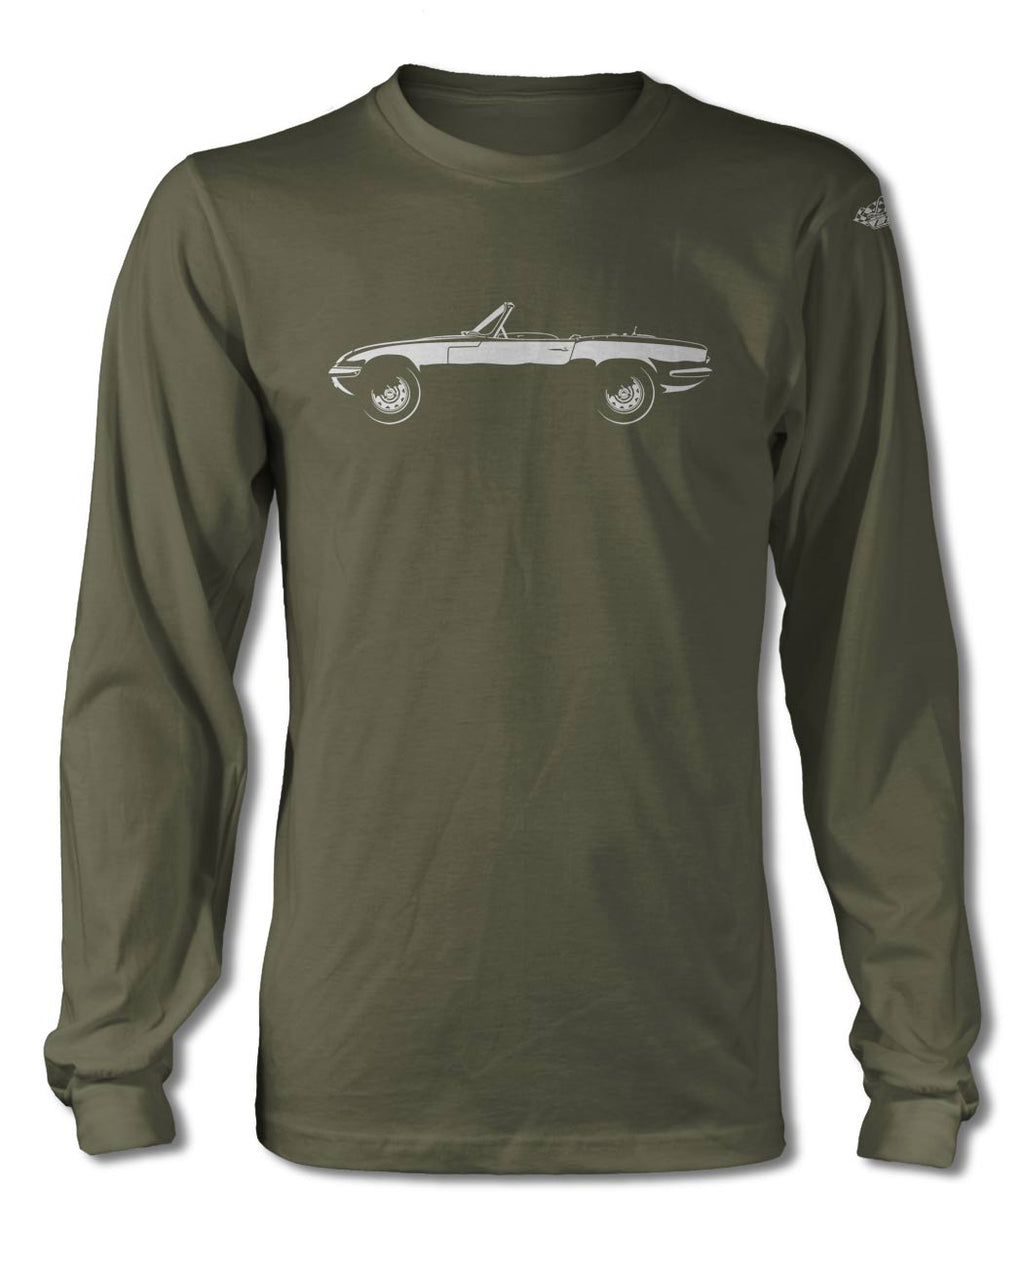 Lotus Elan Convertible T-Shirt - Long Sleeves - Side View